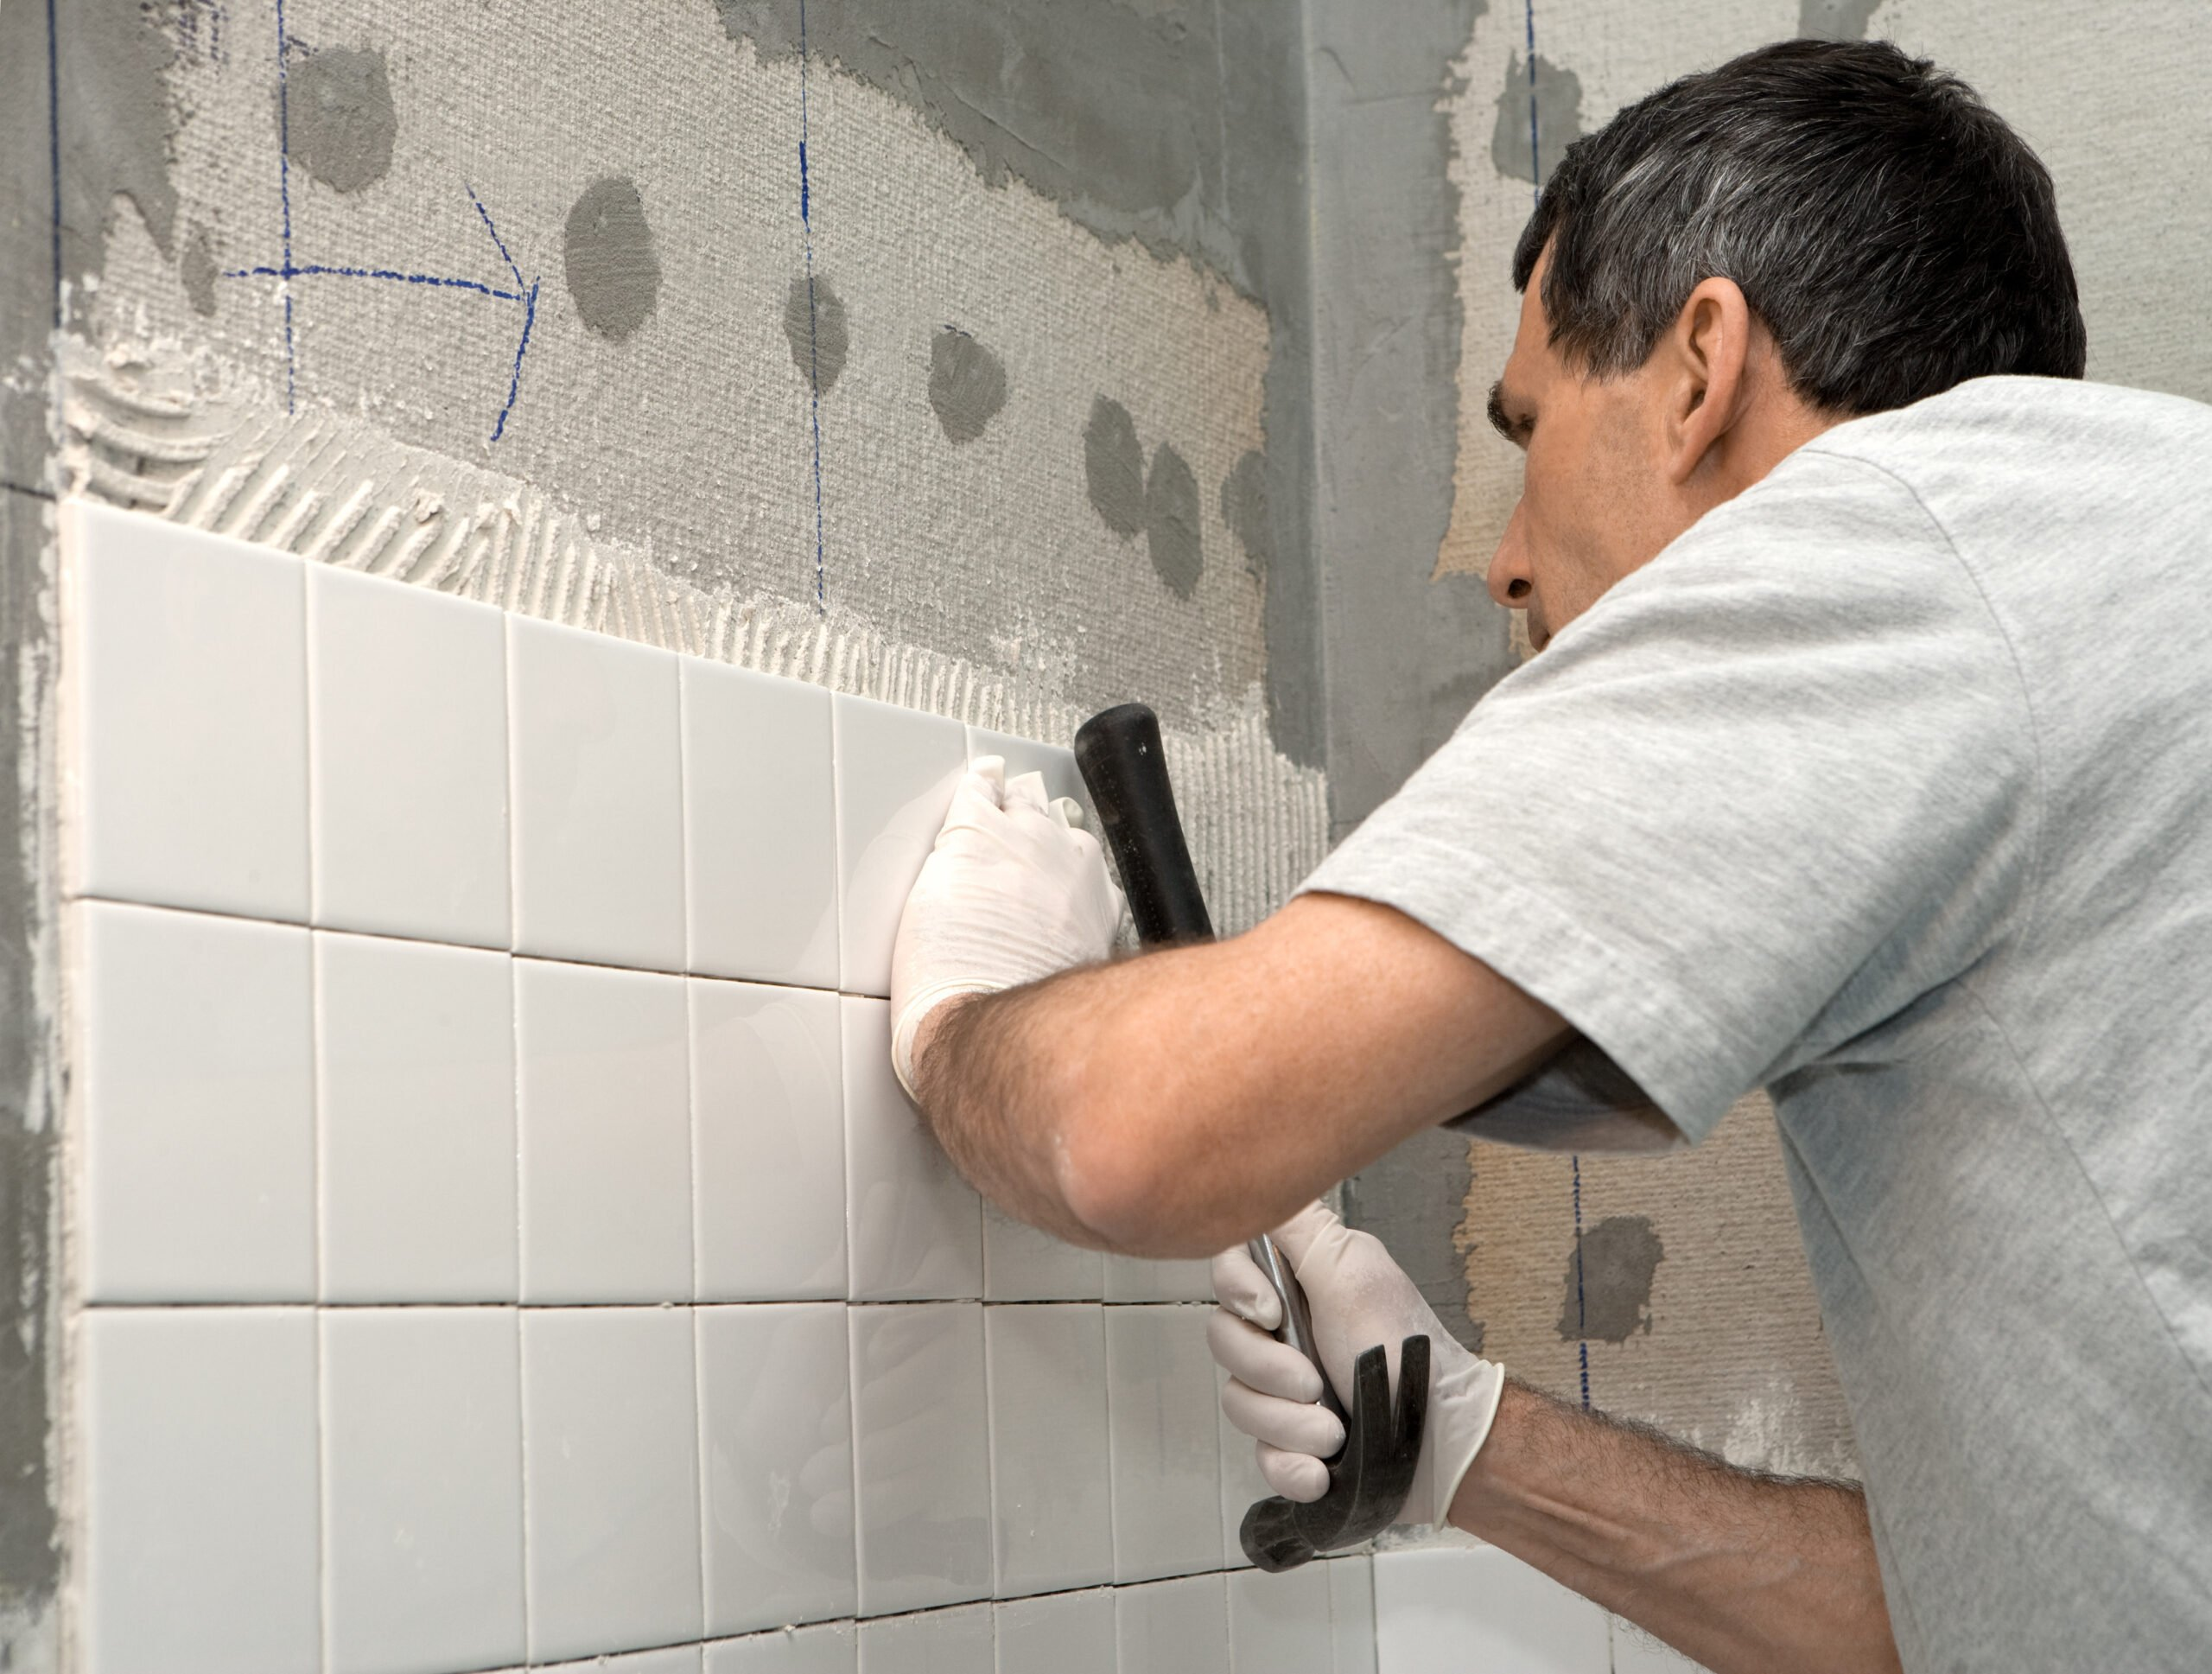 Tips for Tiling a Bathroom